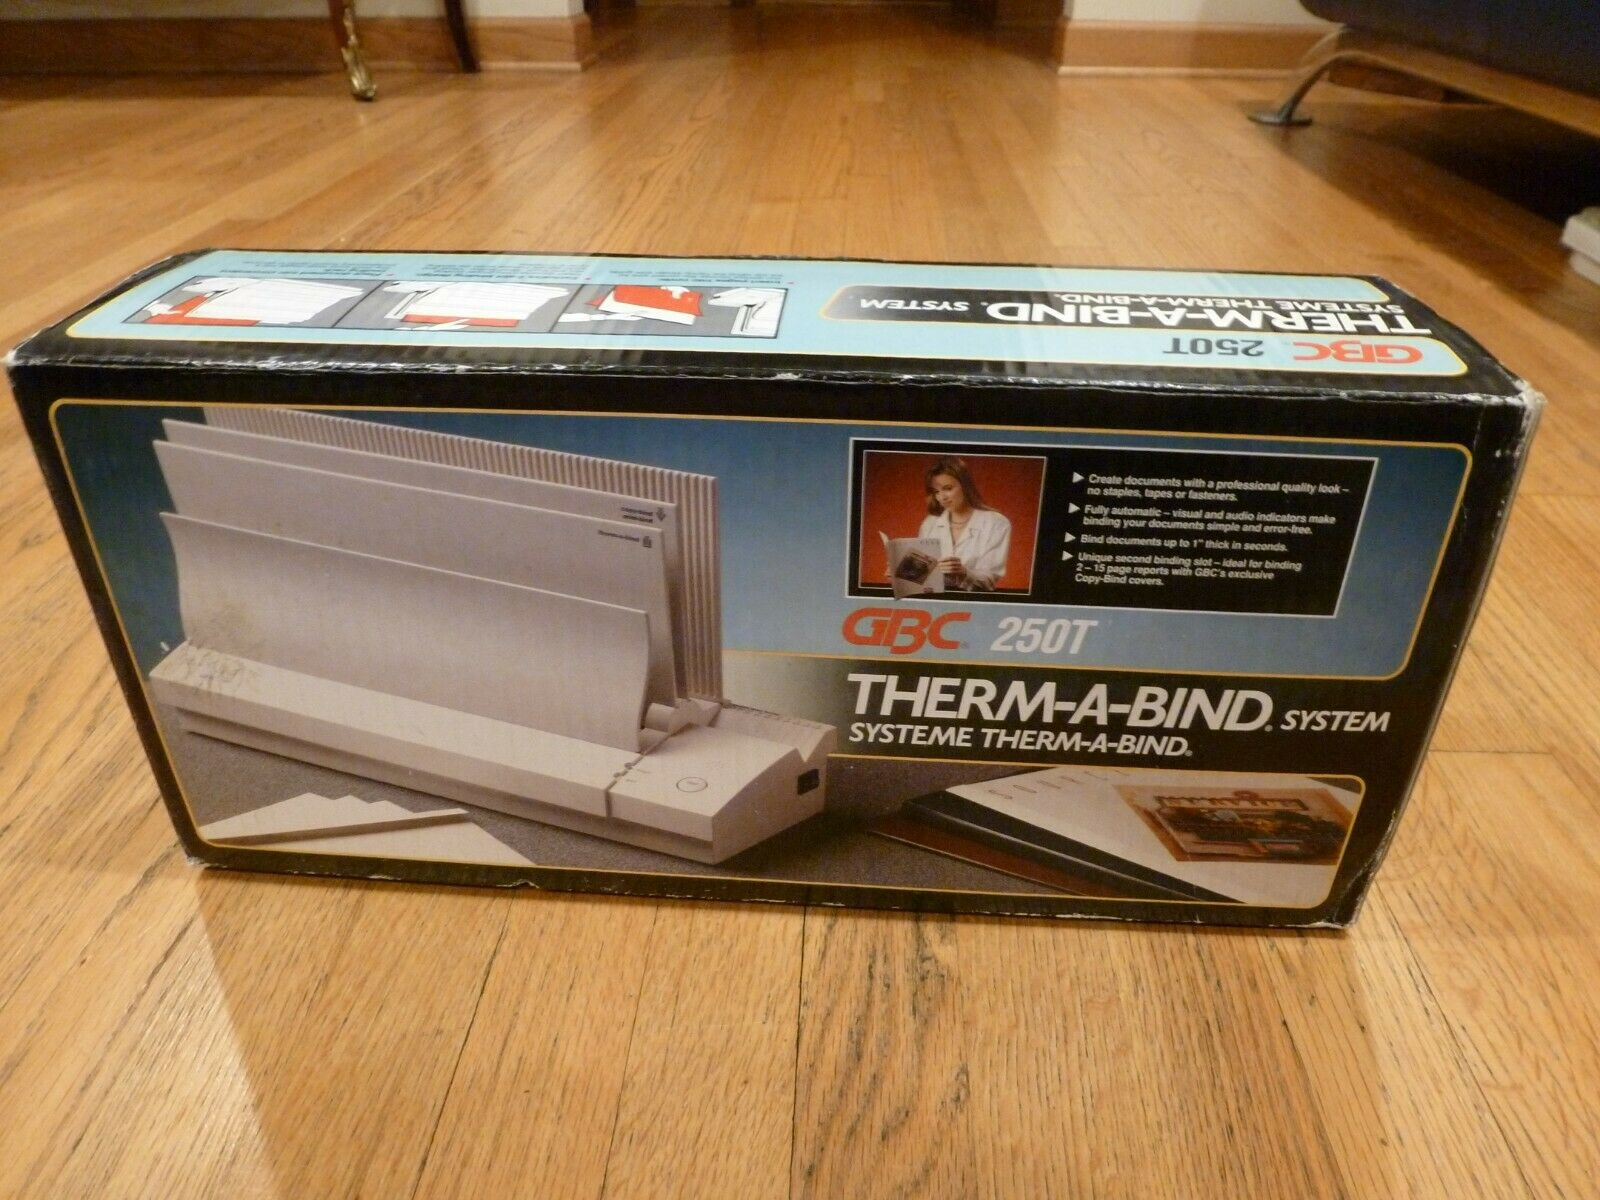 GBC THERM-A-BIND System 250T Automatic Thermal Binding Binde